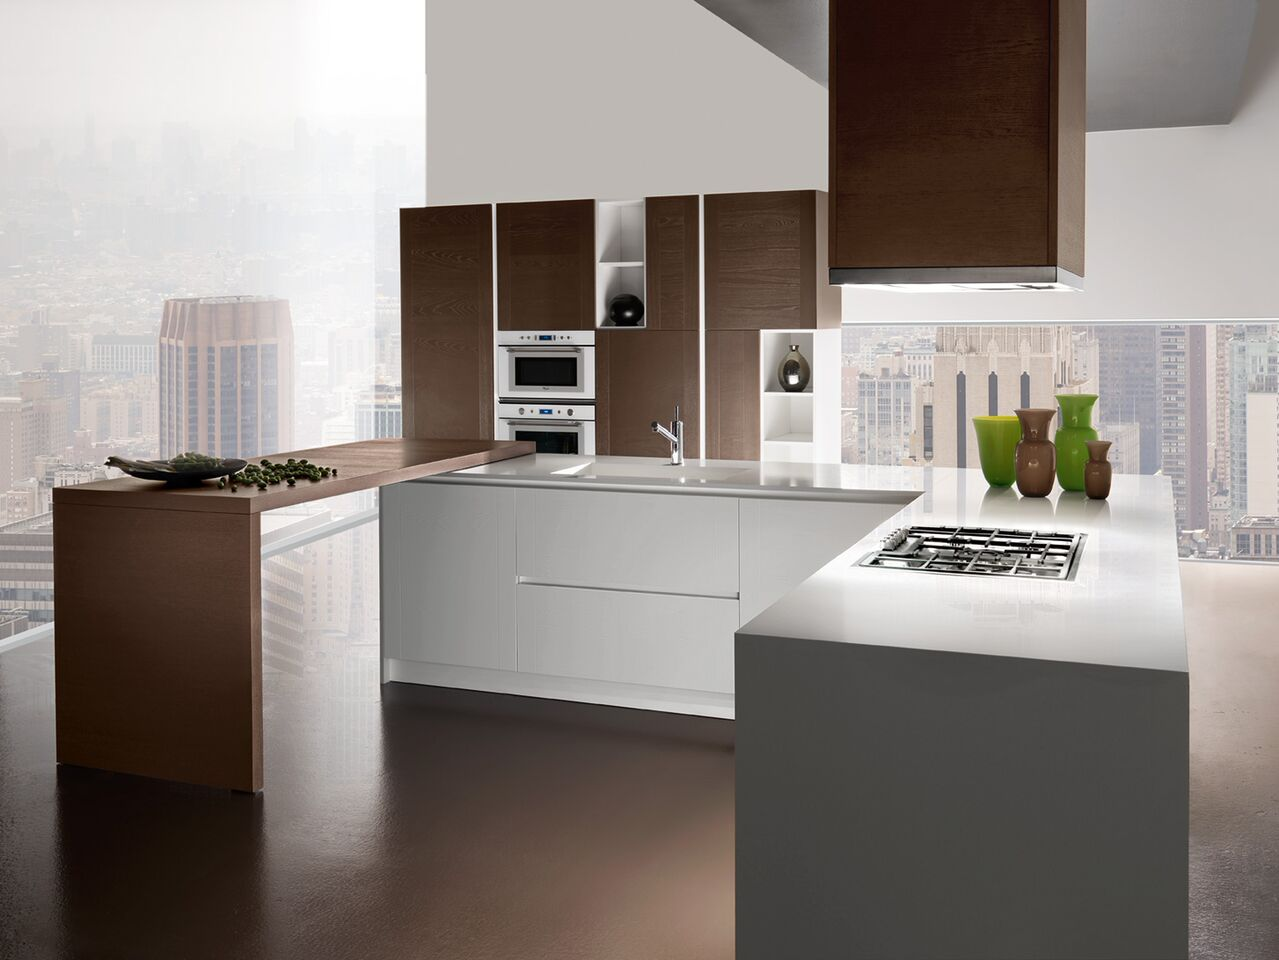 Cucine astra prezzi by astra cucine with astra cucine prezzi - Cucine astra opinioni ...